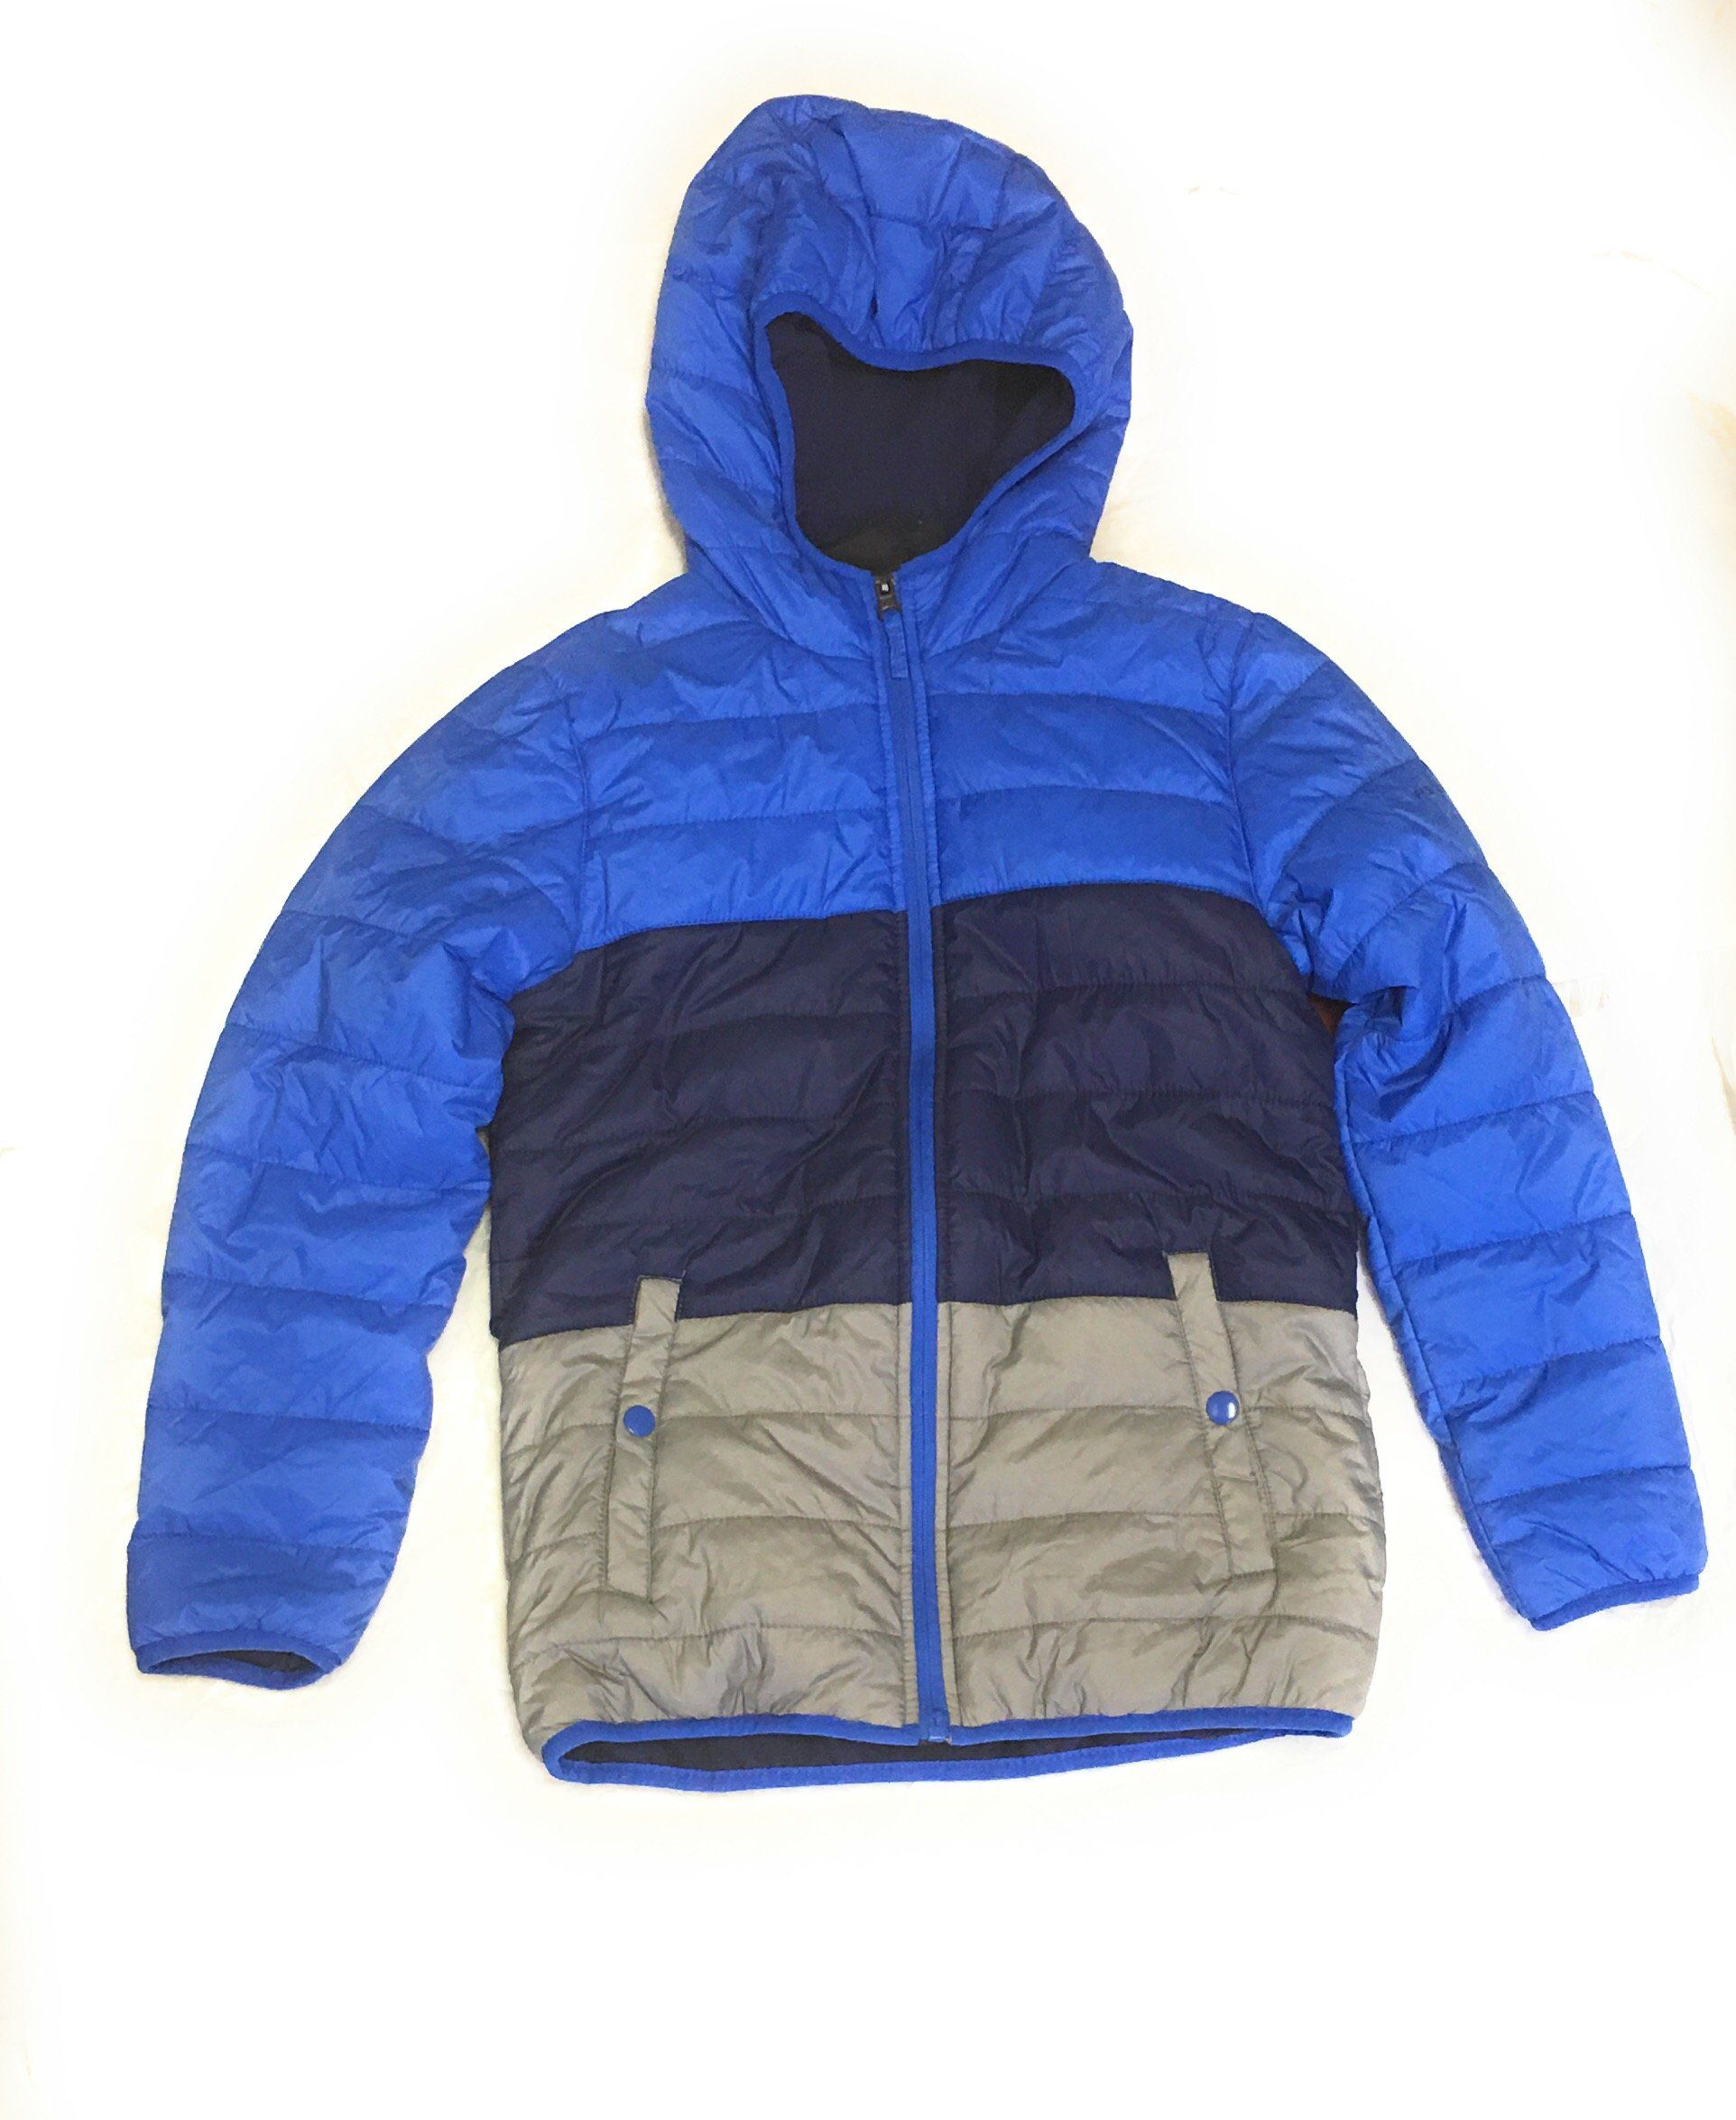 71cf5aa98a17 Free Country Ultrafill Series Lightweight Boys Jacket size 7 8 ...